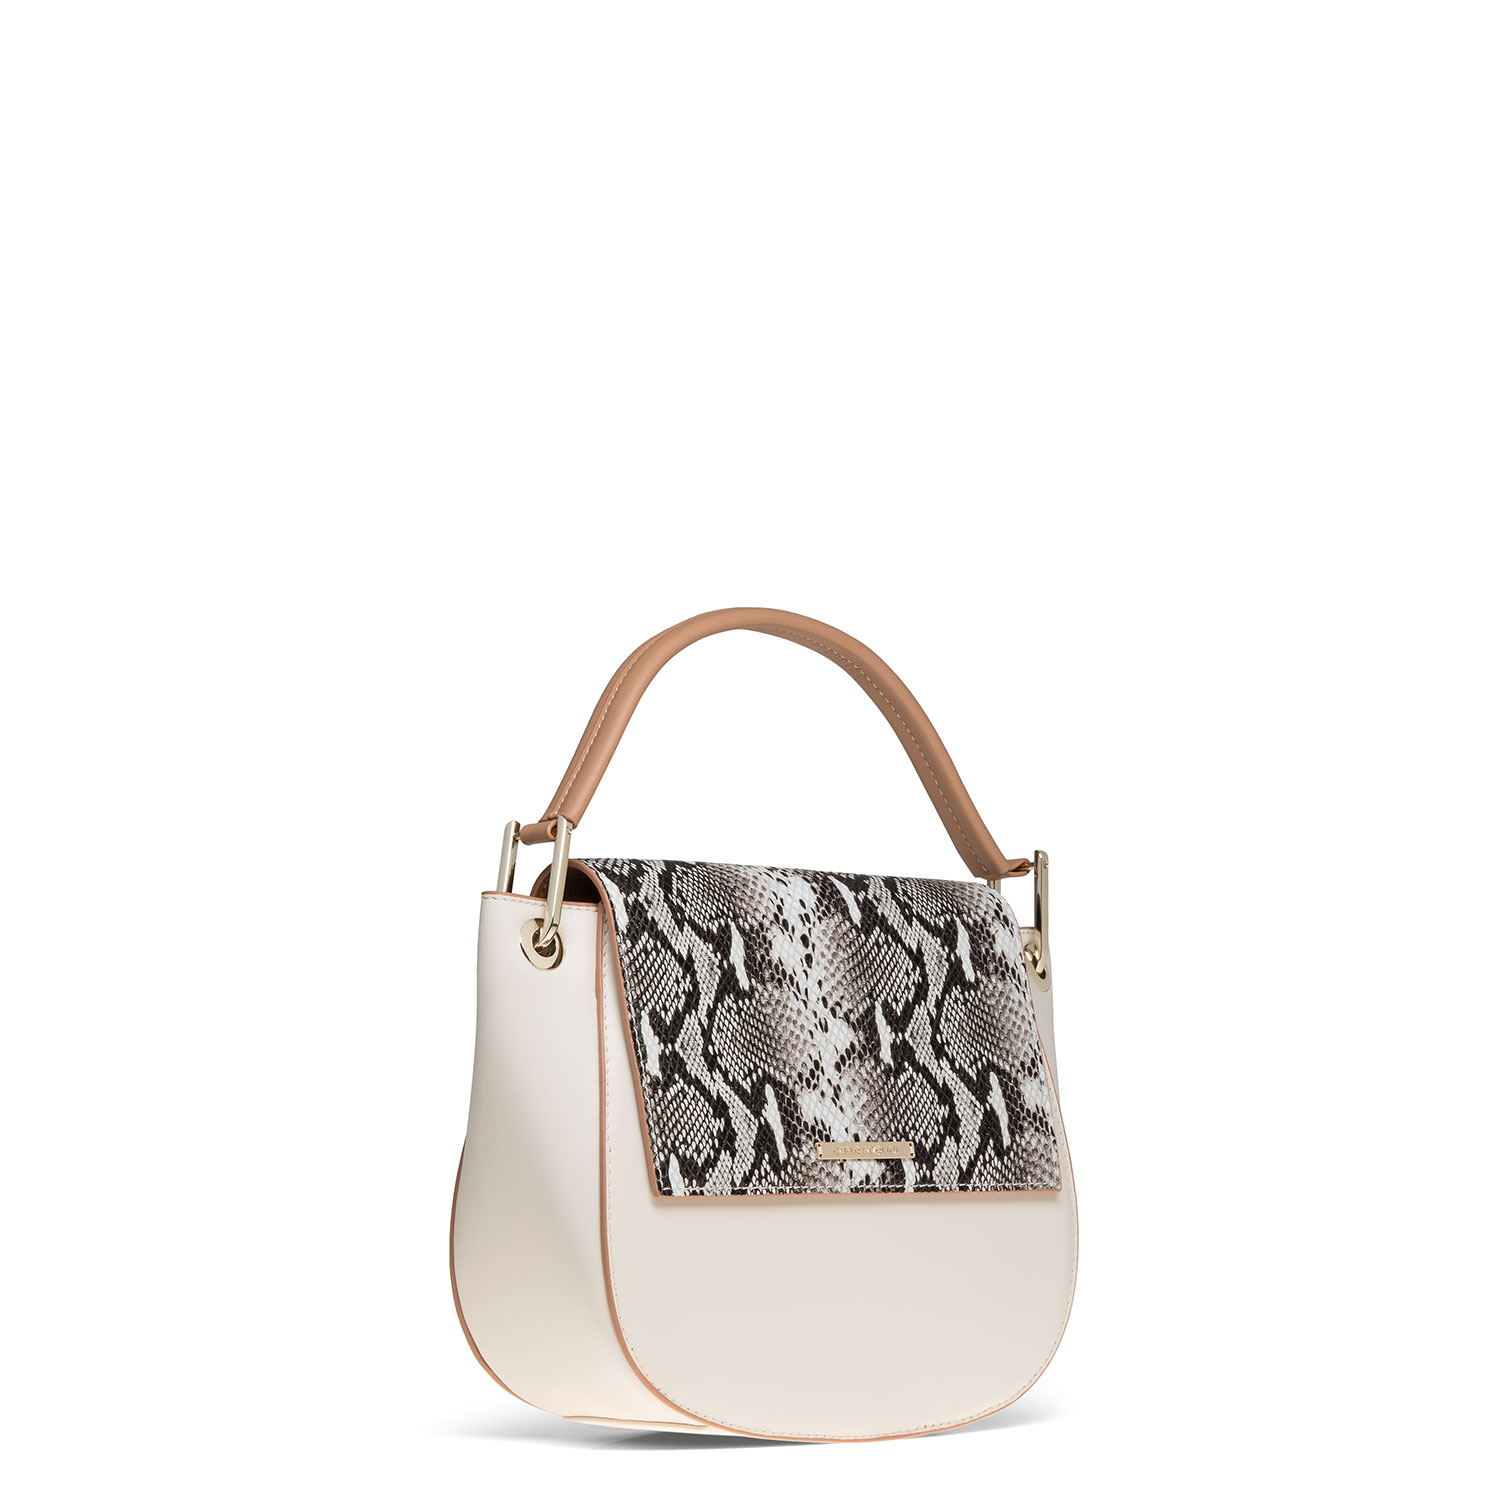 Women's bag CARLO PAZOLINI PS-N2636-19